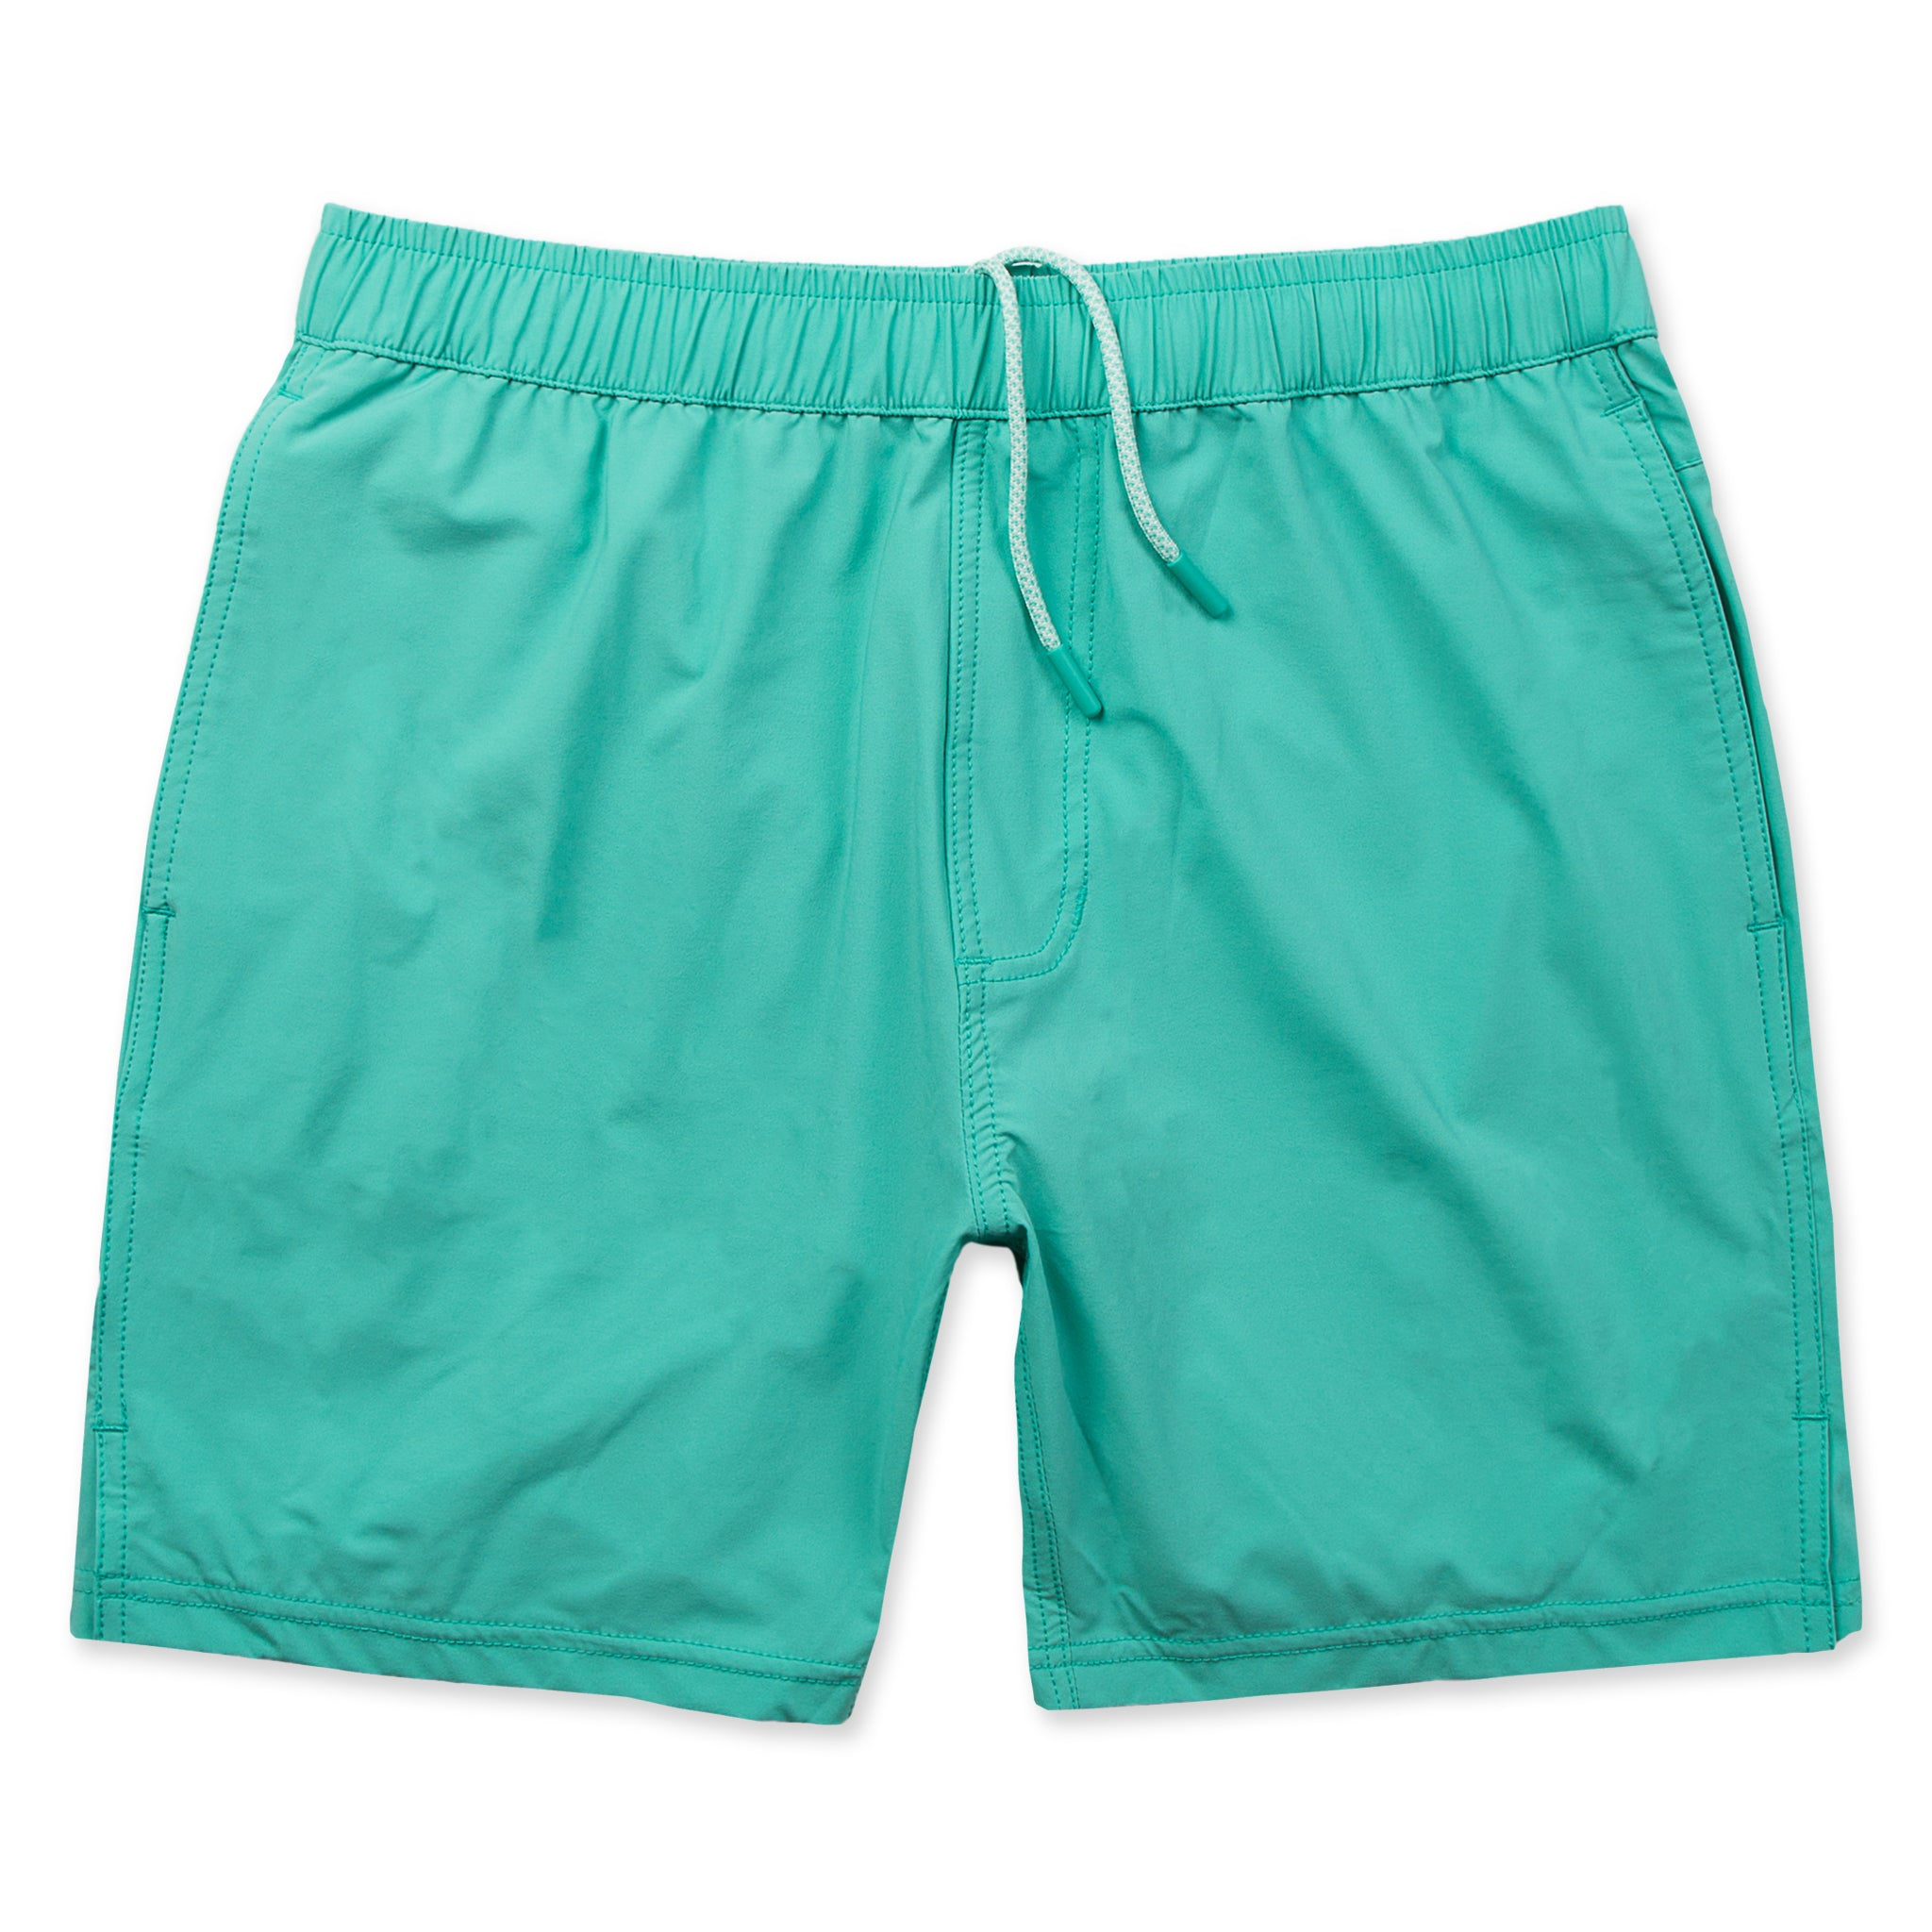 Momentum Short 2.0 in Waterfall- Front